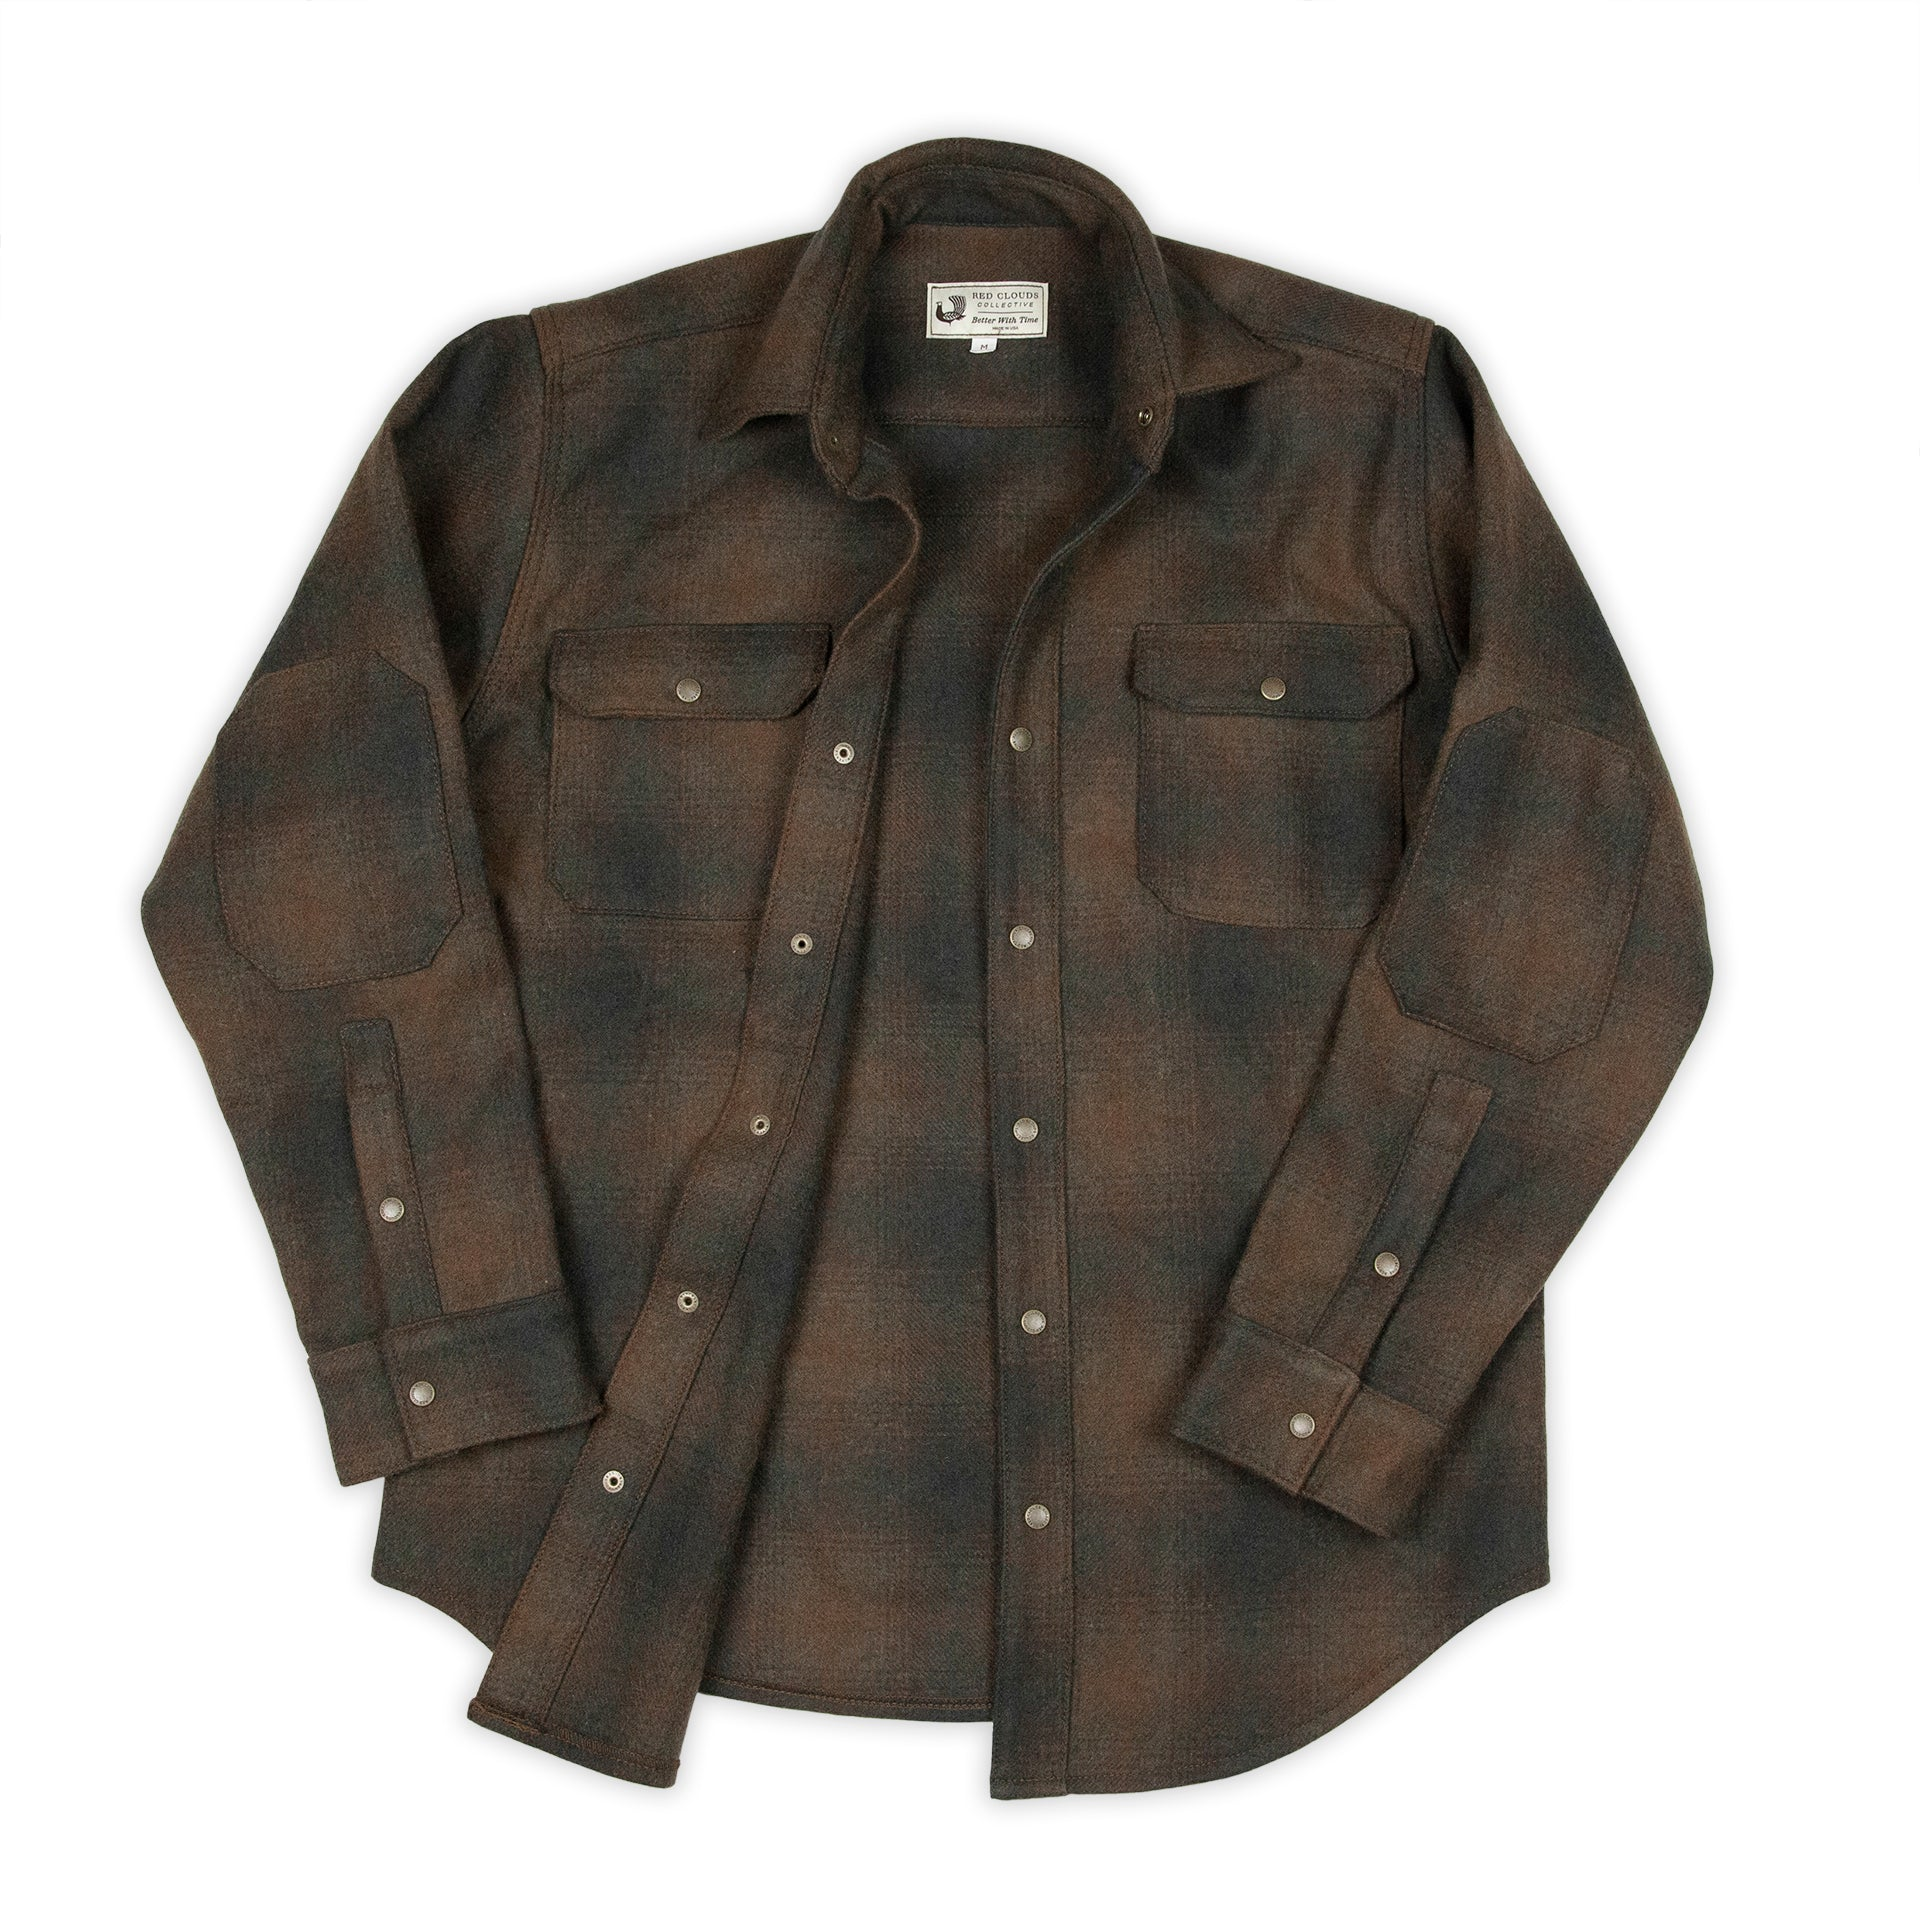 Witham Work Shirt - Heavy Wool